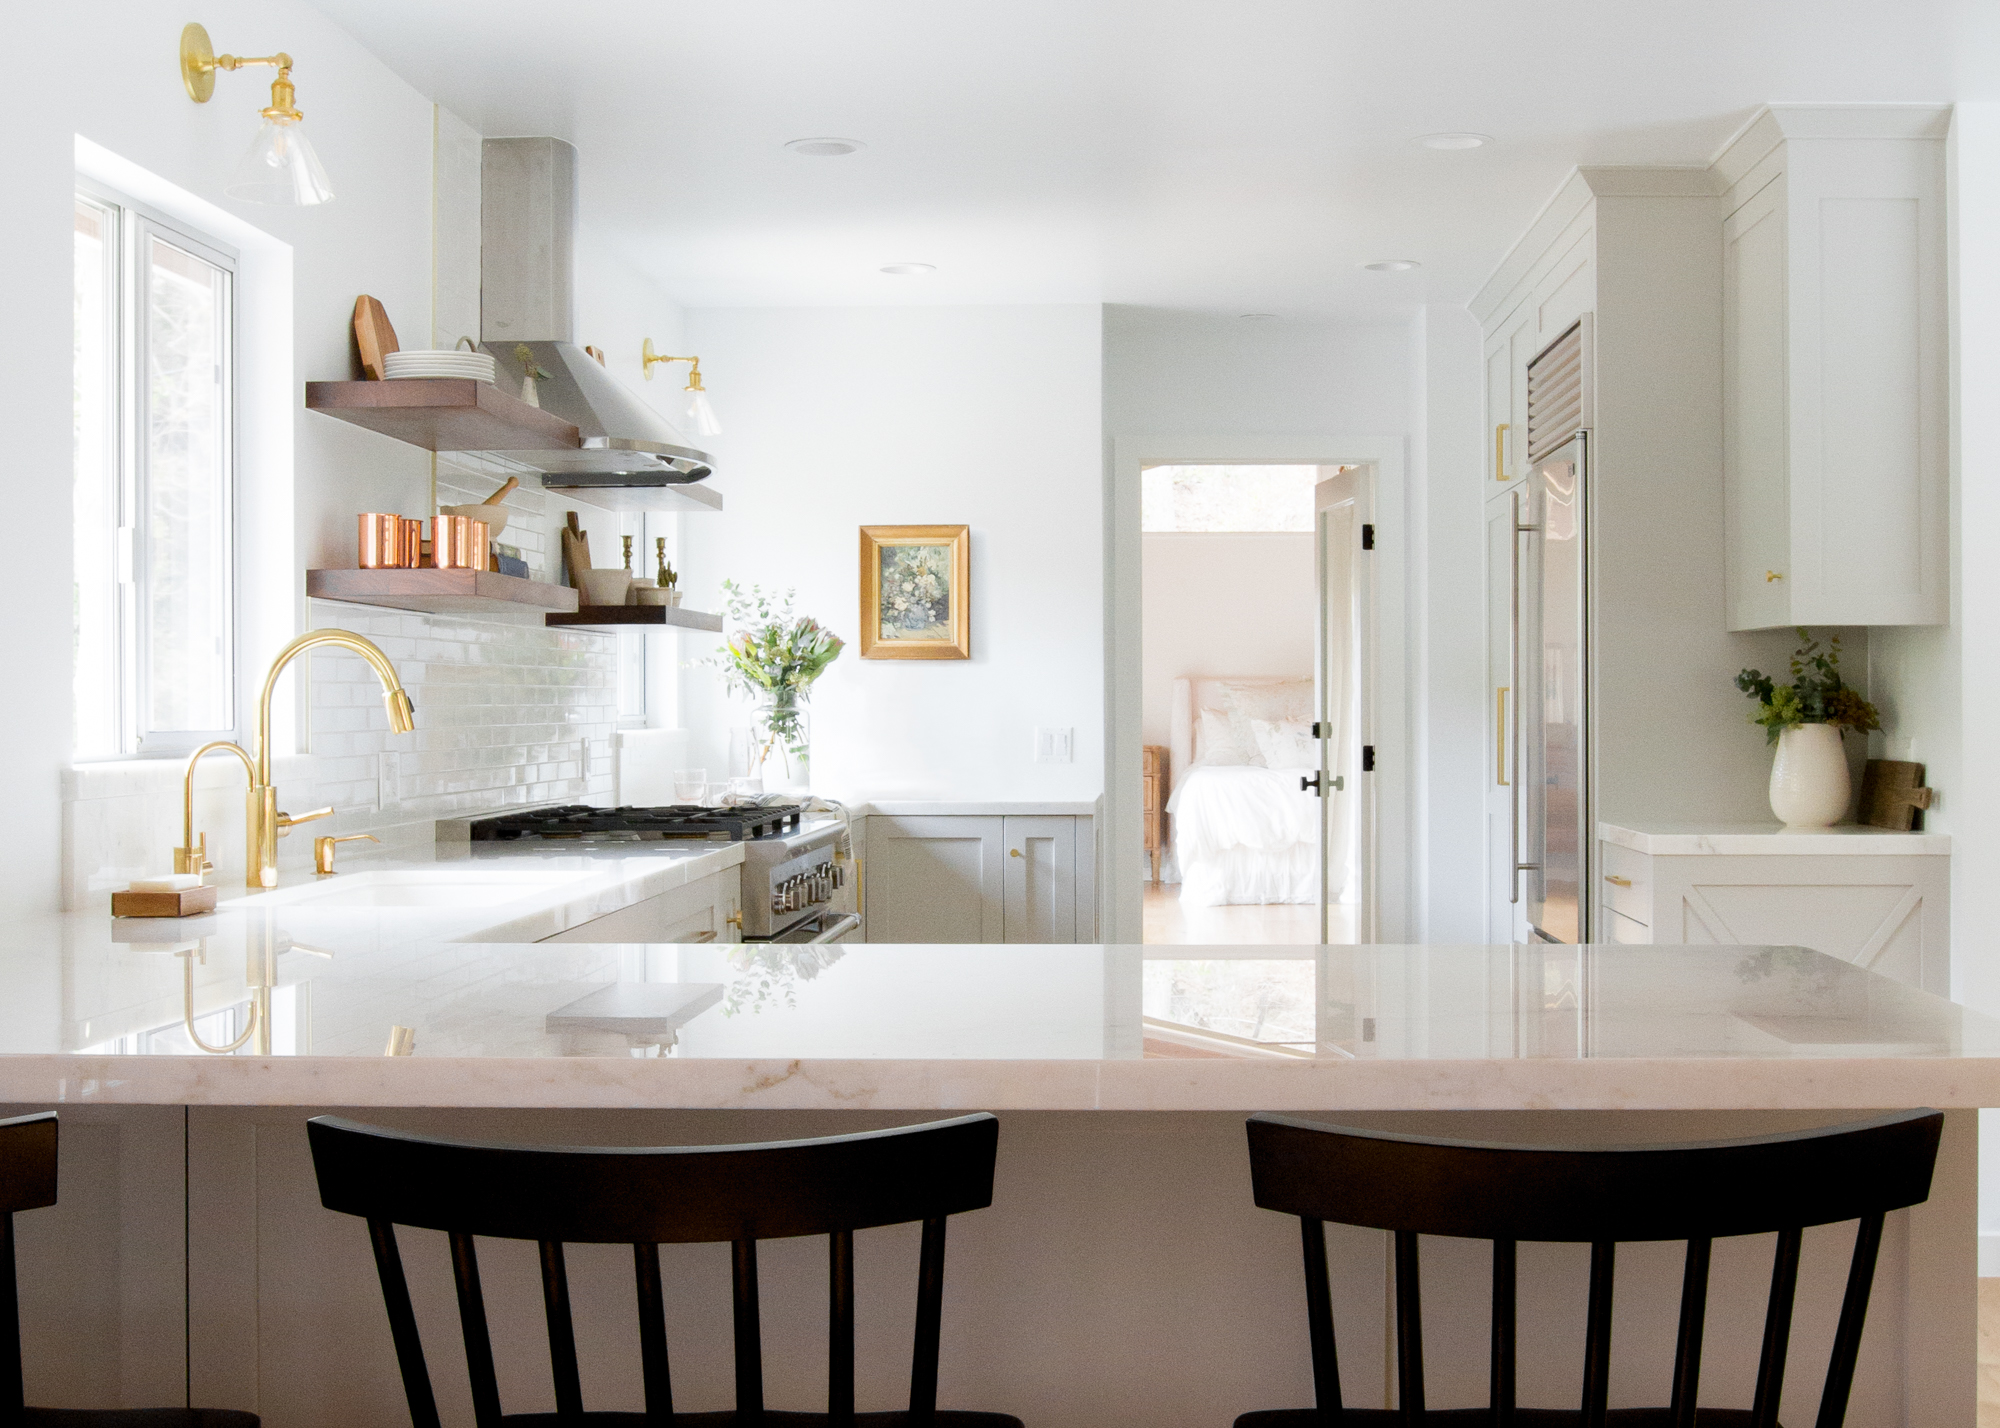 Topanga Canyon Modern Farmhouse Kitchen - Lauren Bradshaw Design